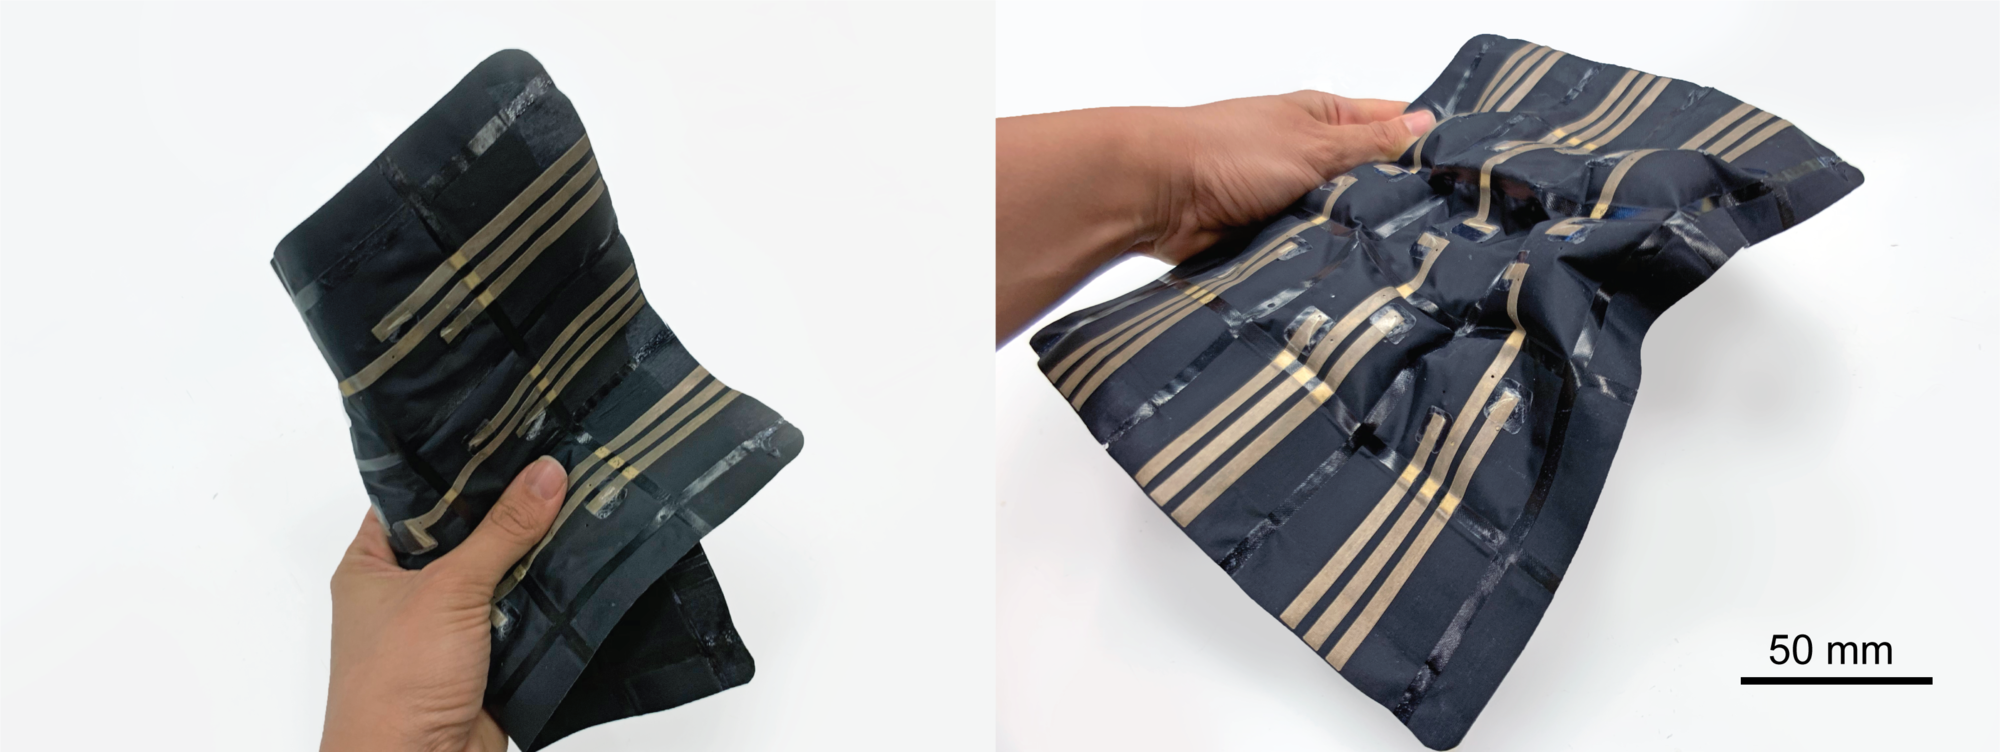 Two images of the STATS (which look like flat black fabric with thin bronze-colored strips), one in a deflated state and the other inflated